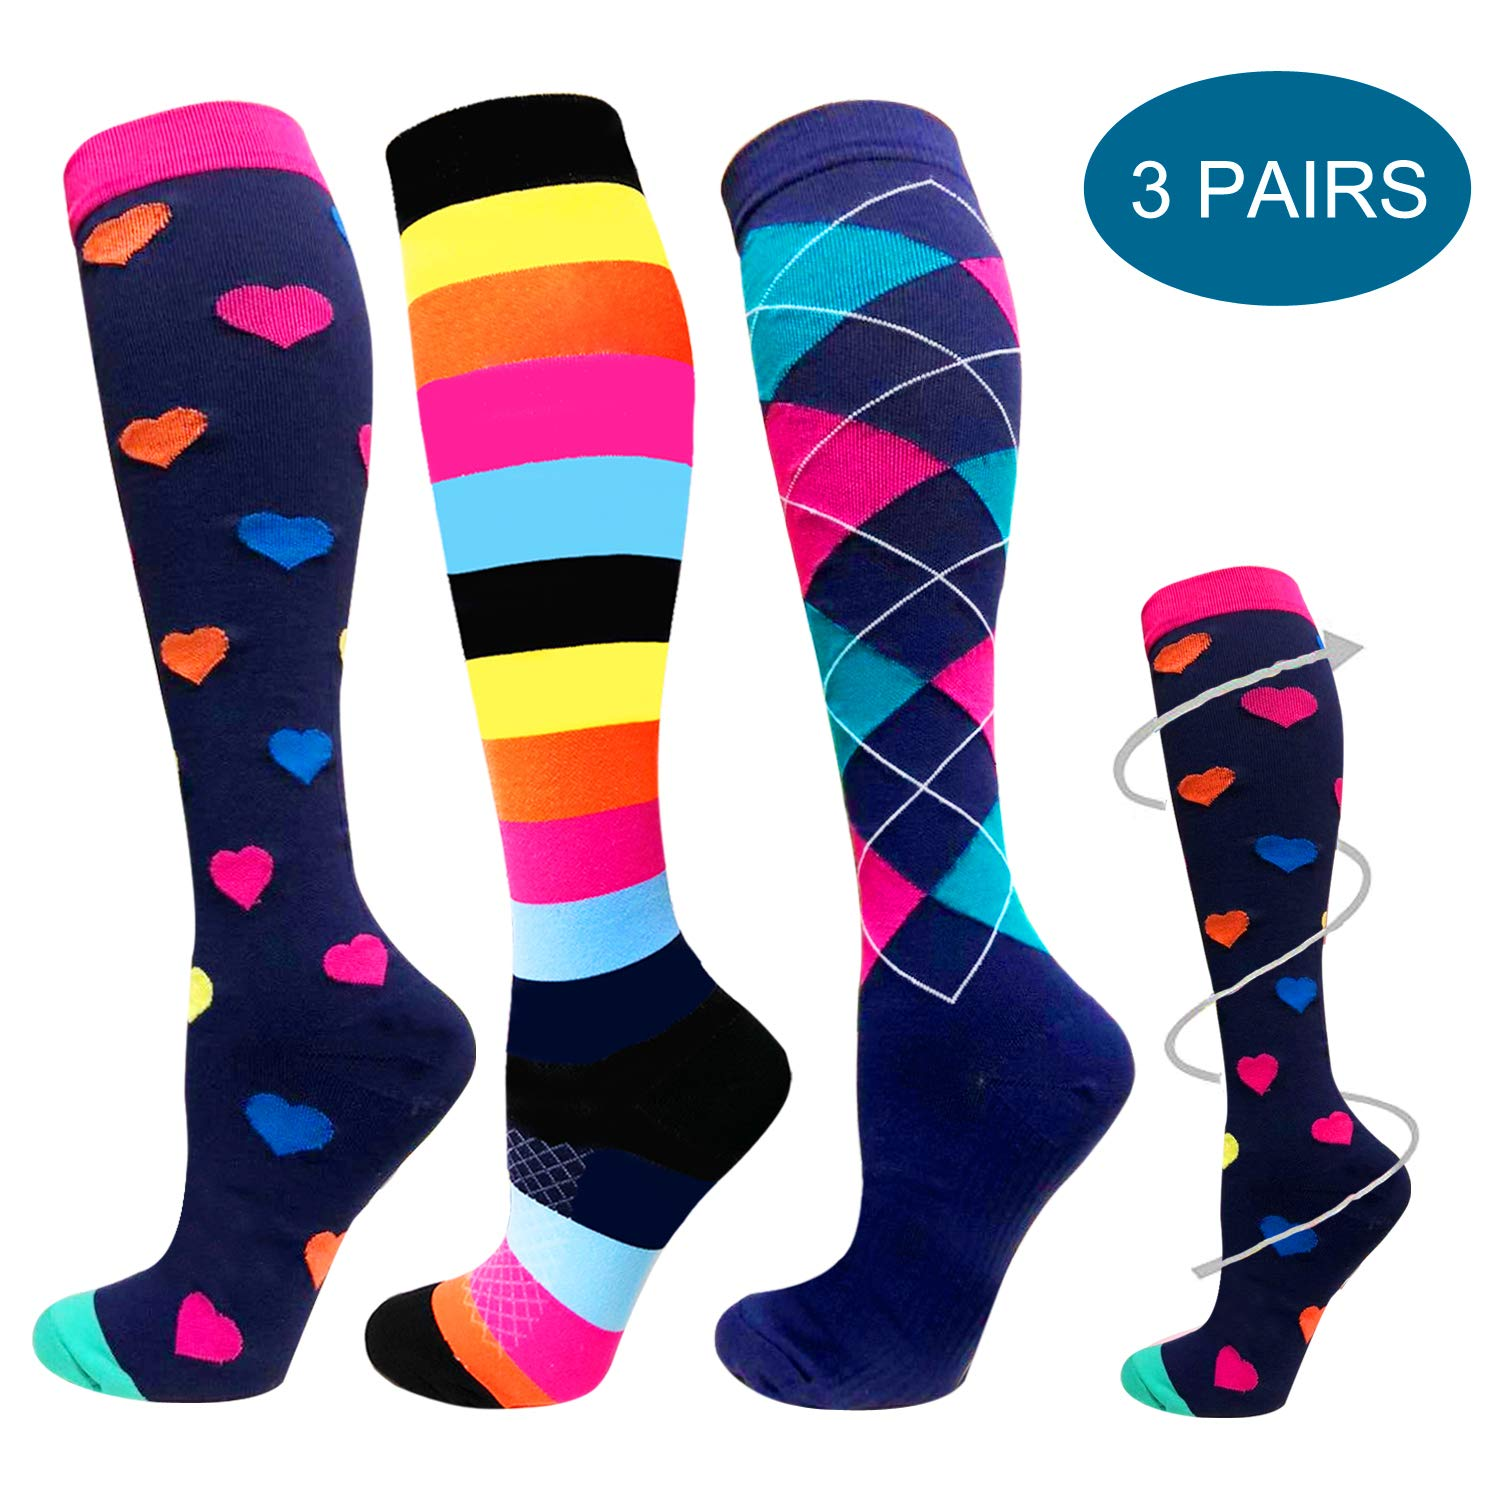 1/3/6 Pairs Compression Socks for Women&Men (20-30mmHg) -Best for Running, Travel,Cycling,Pregnant,Nurse, Edema